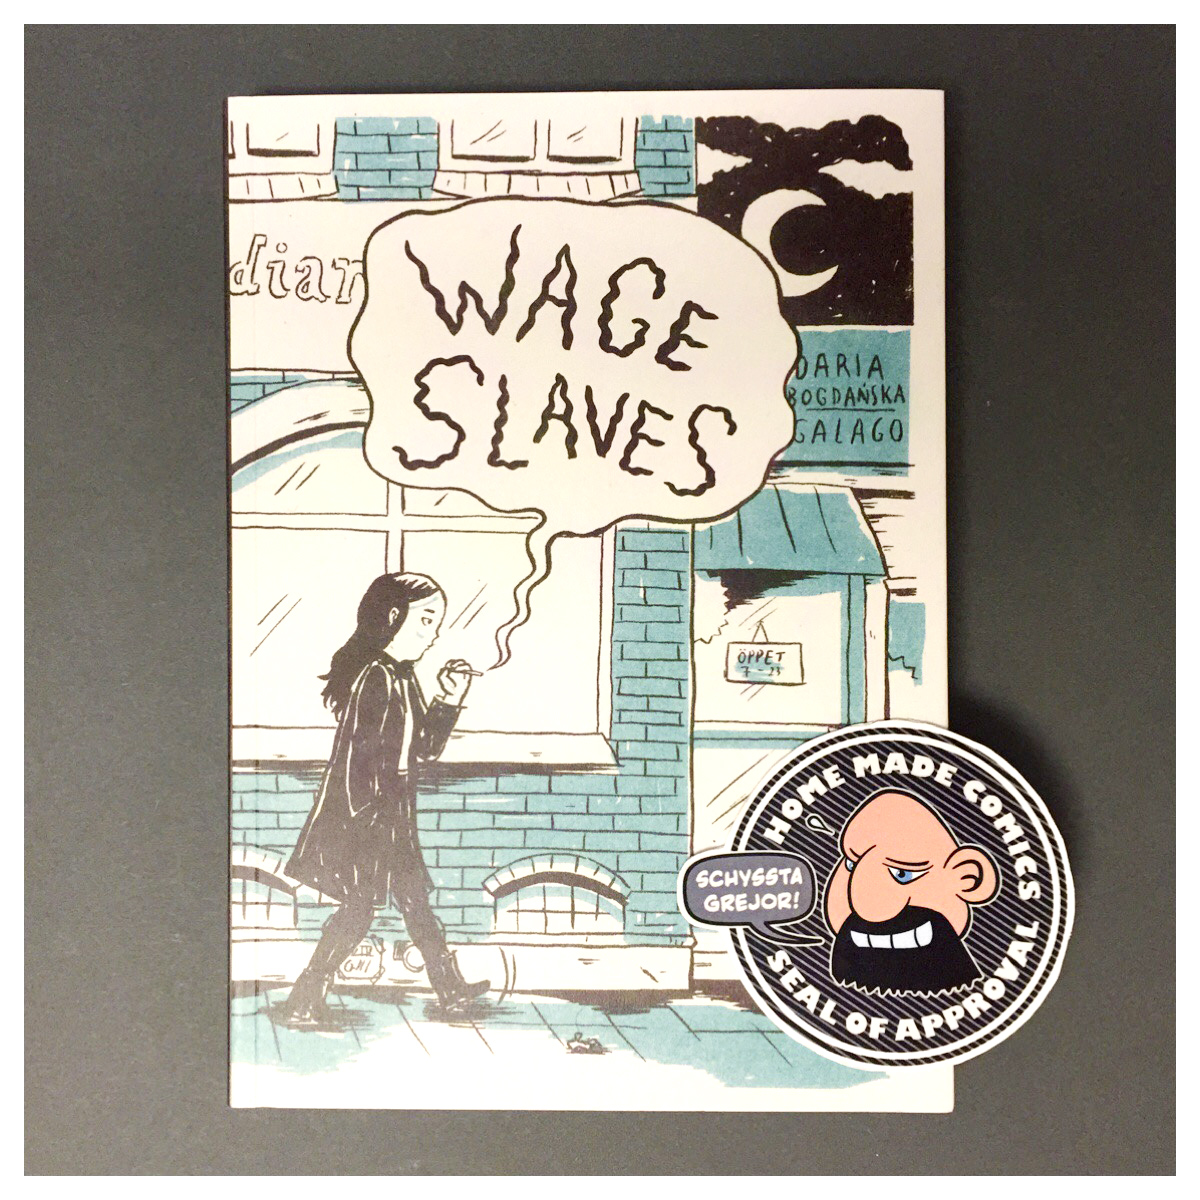 Home Made Comics Seal of Approval #220. Wage slaves av Daria Bogdanska utgiven av Galago 2016.